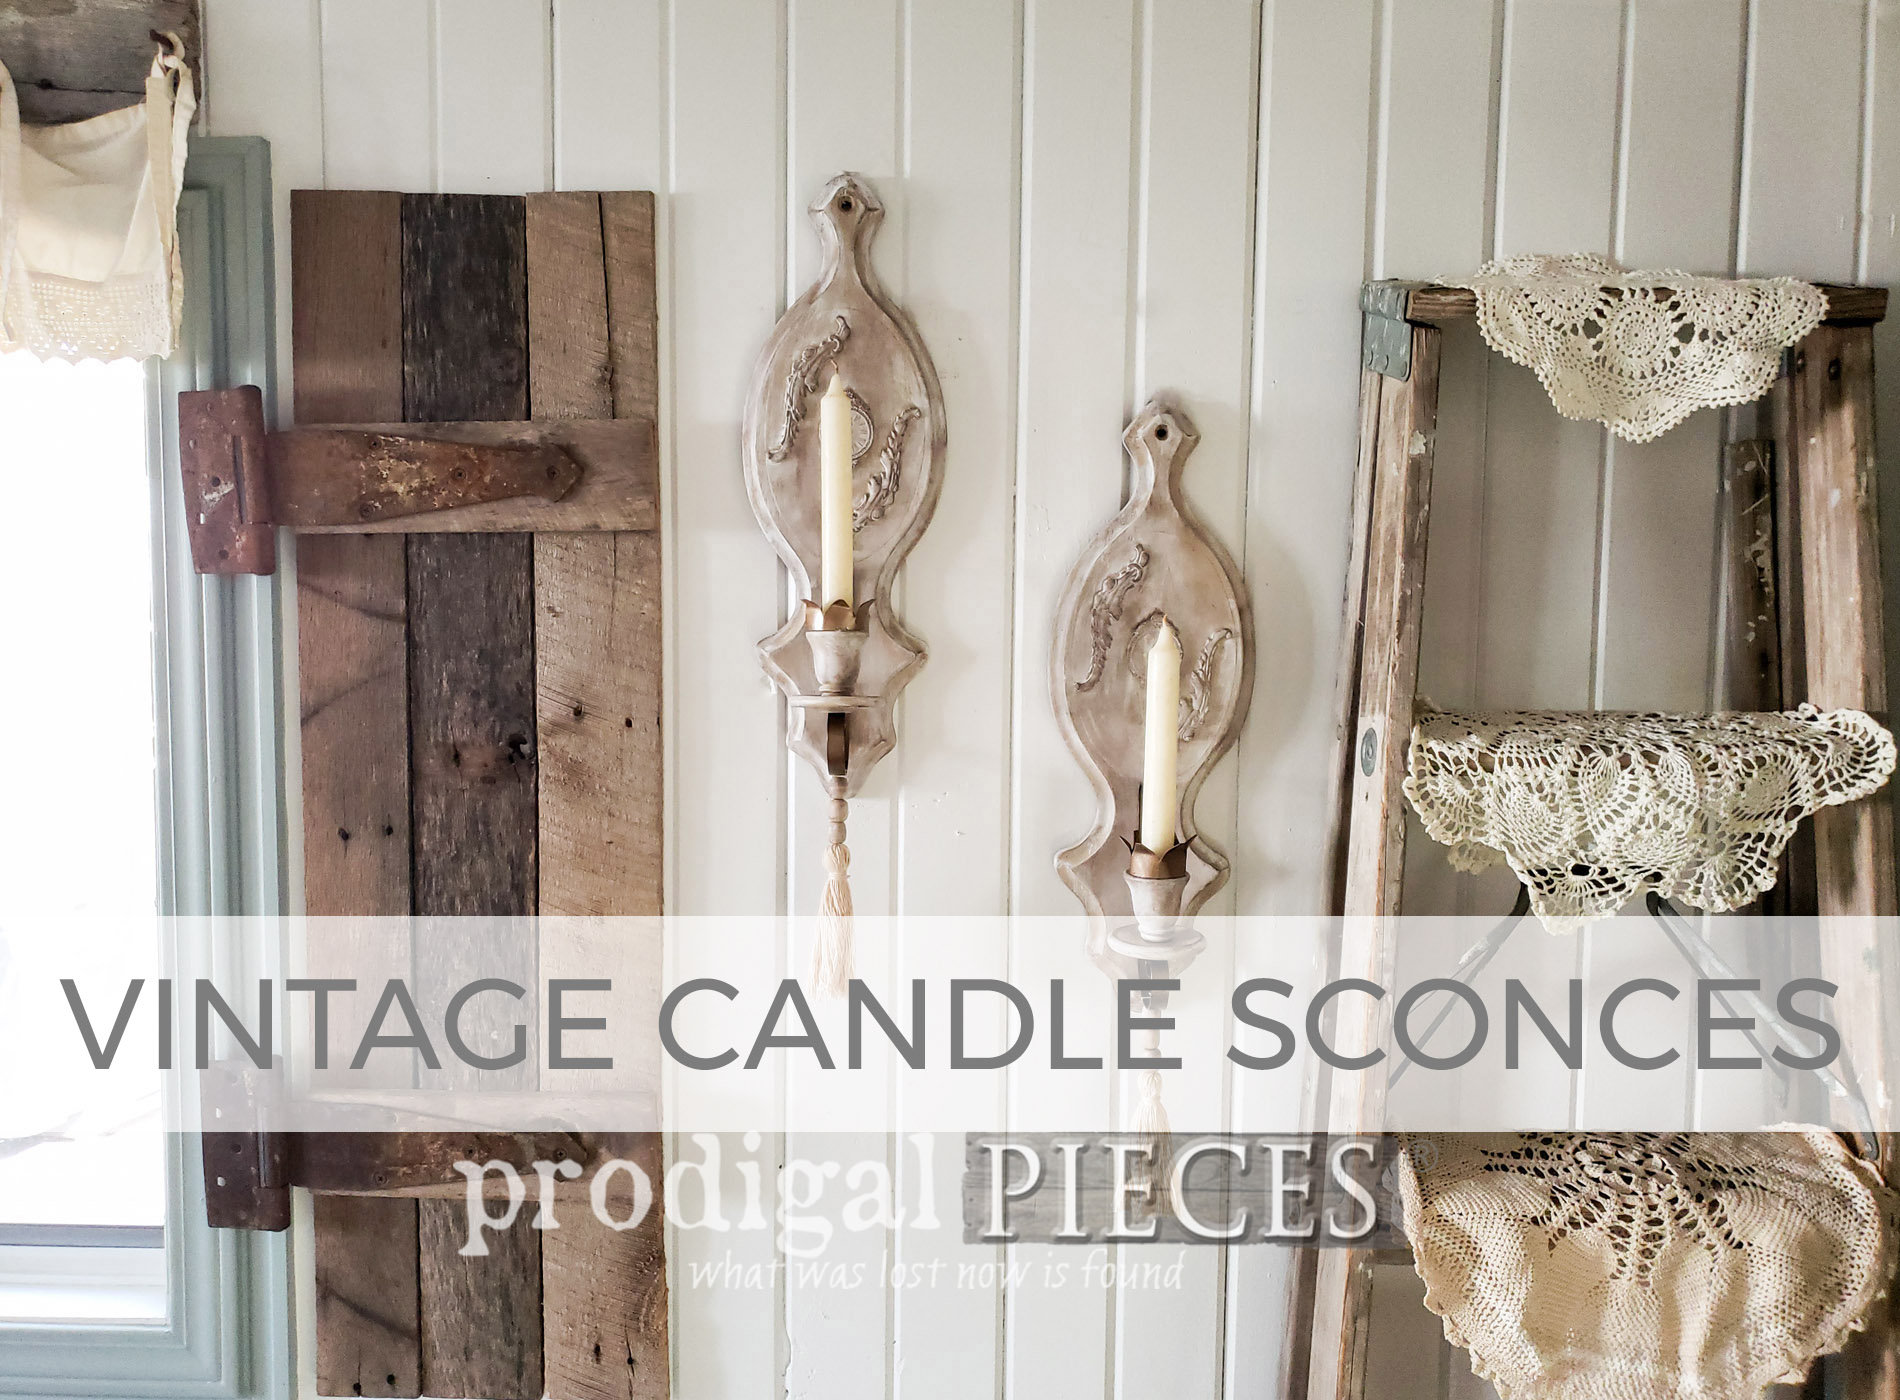 Vintage Candle Sconces Made Farmhouse Chic by Larissa of Prodigal Pieces | prodigalpieces.com